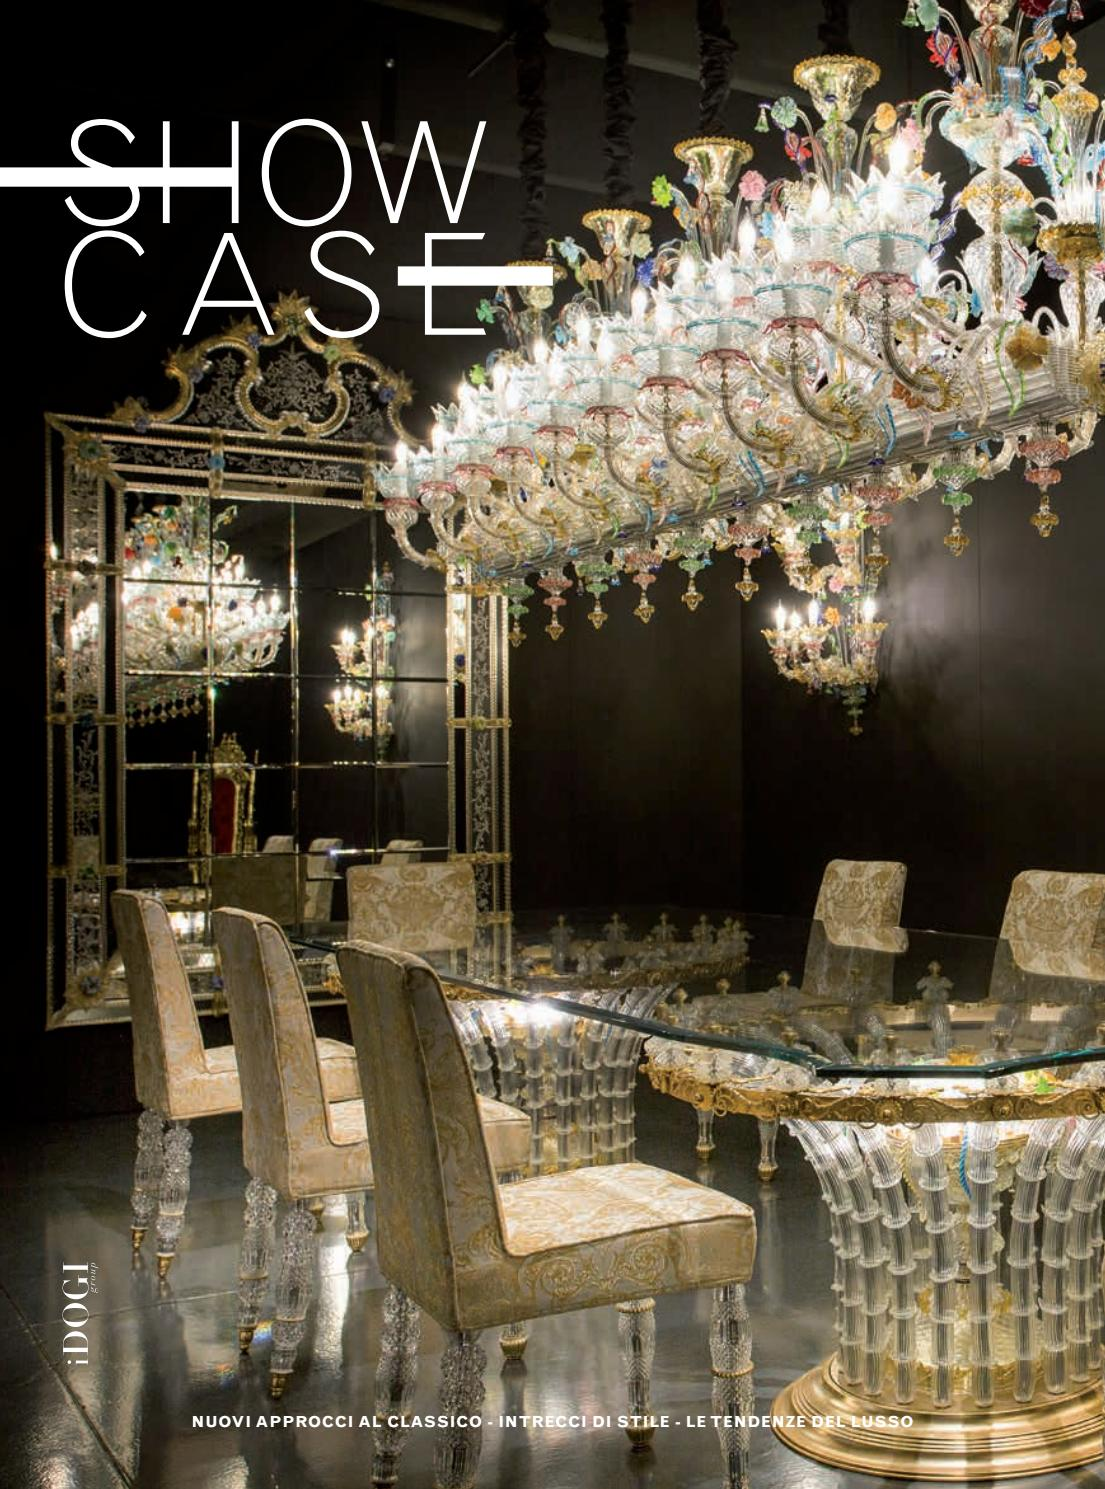 Show Case 77 By Macaluso Salvatore Account Executive Showcase Issuu